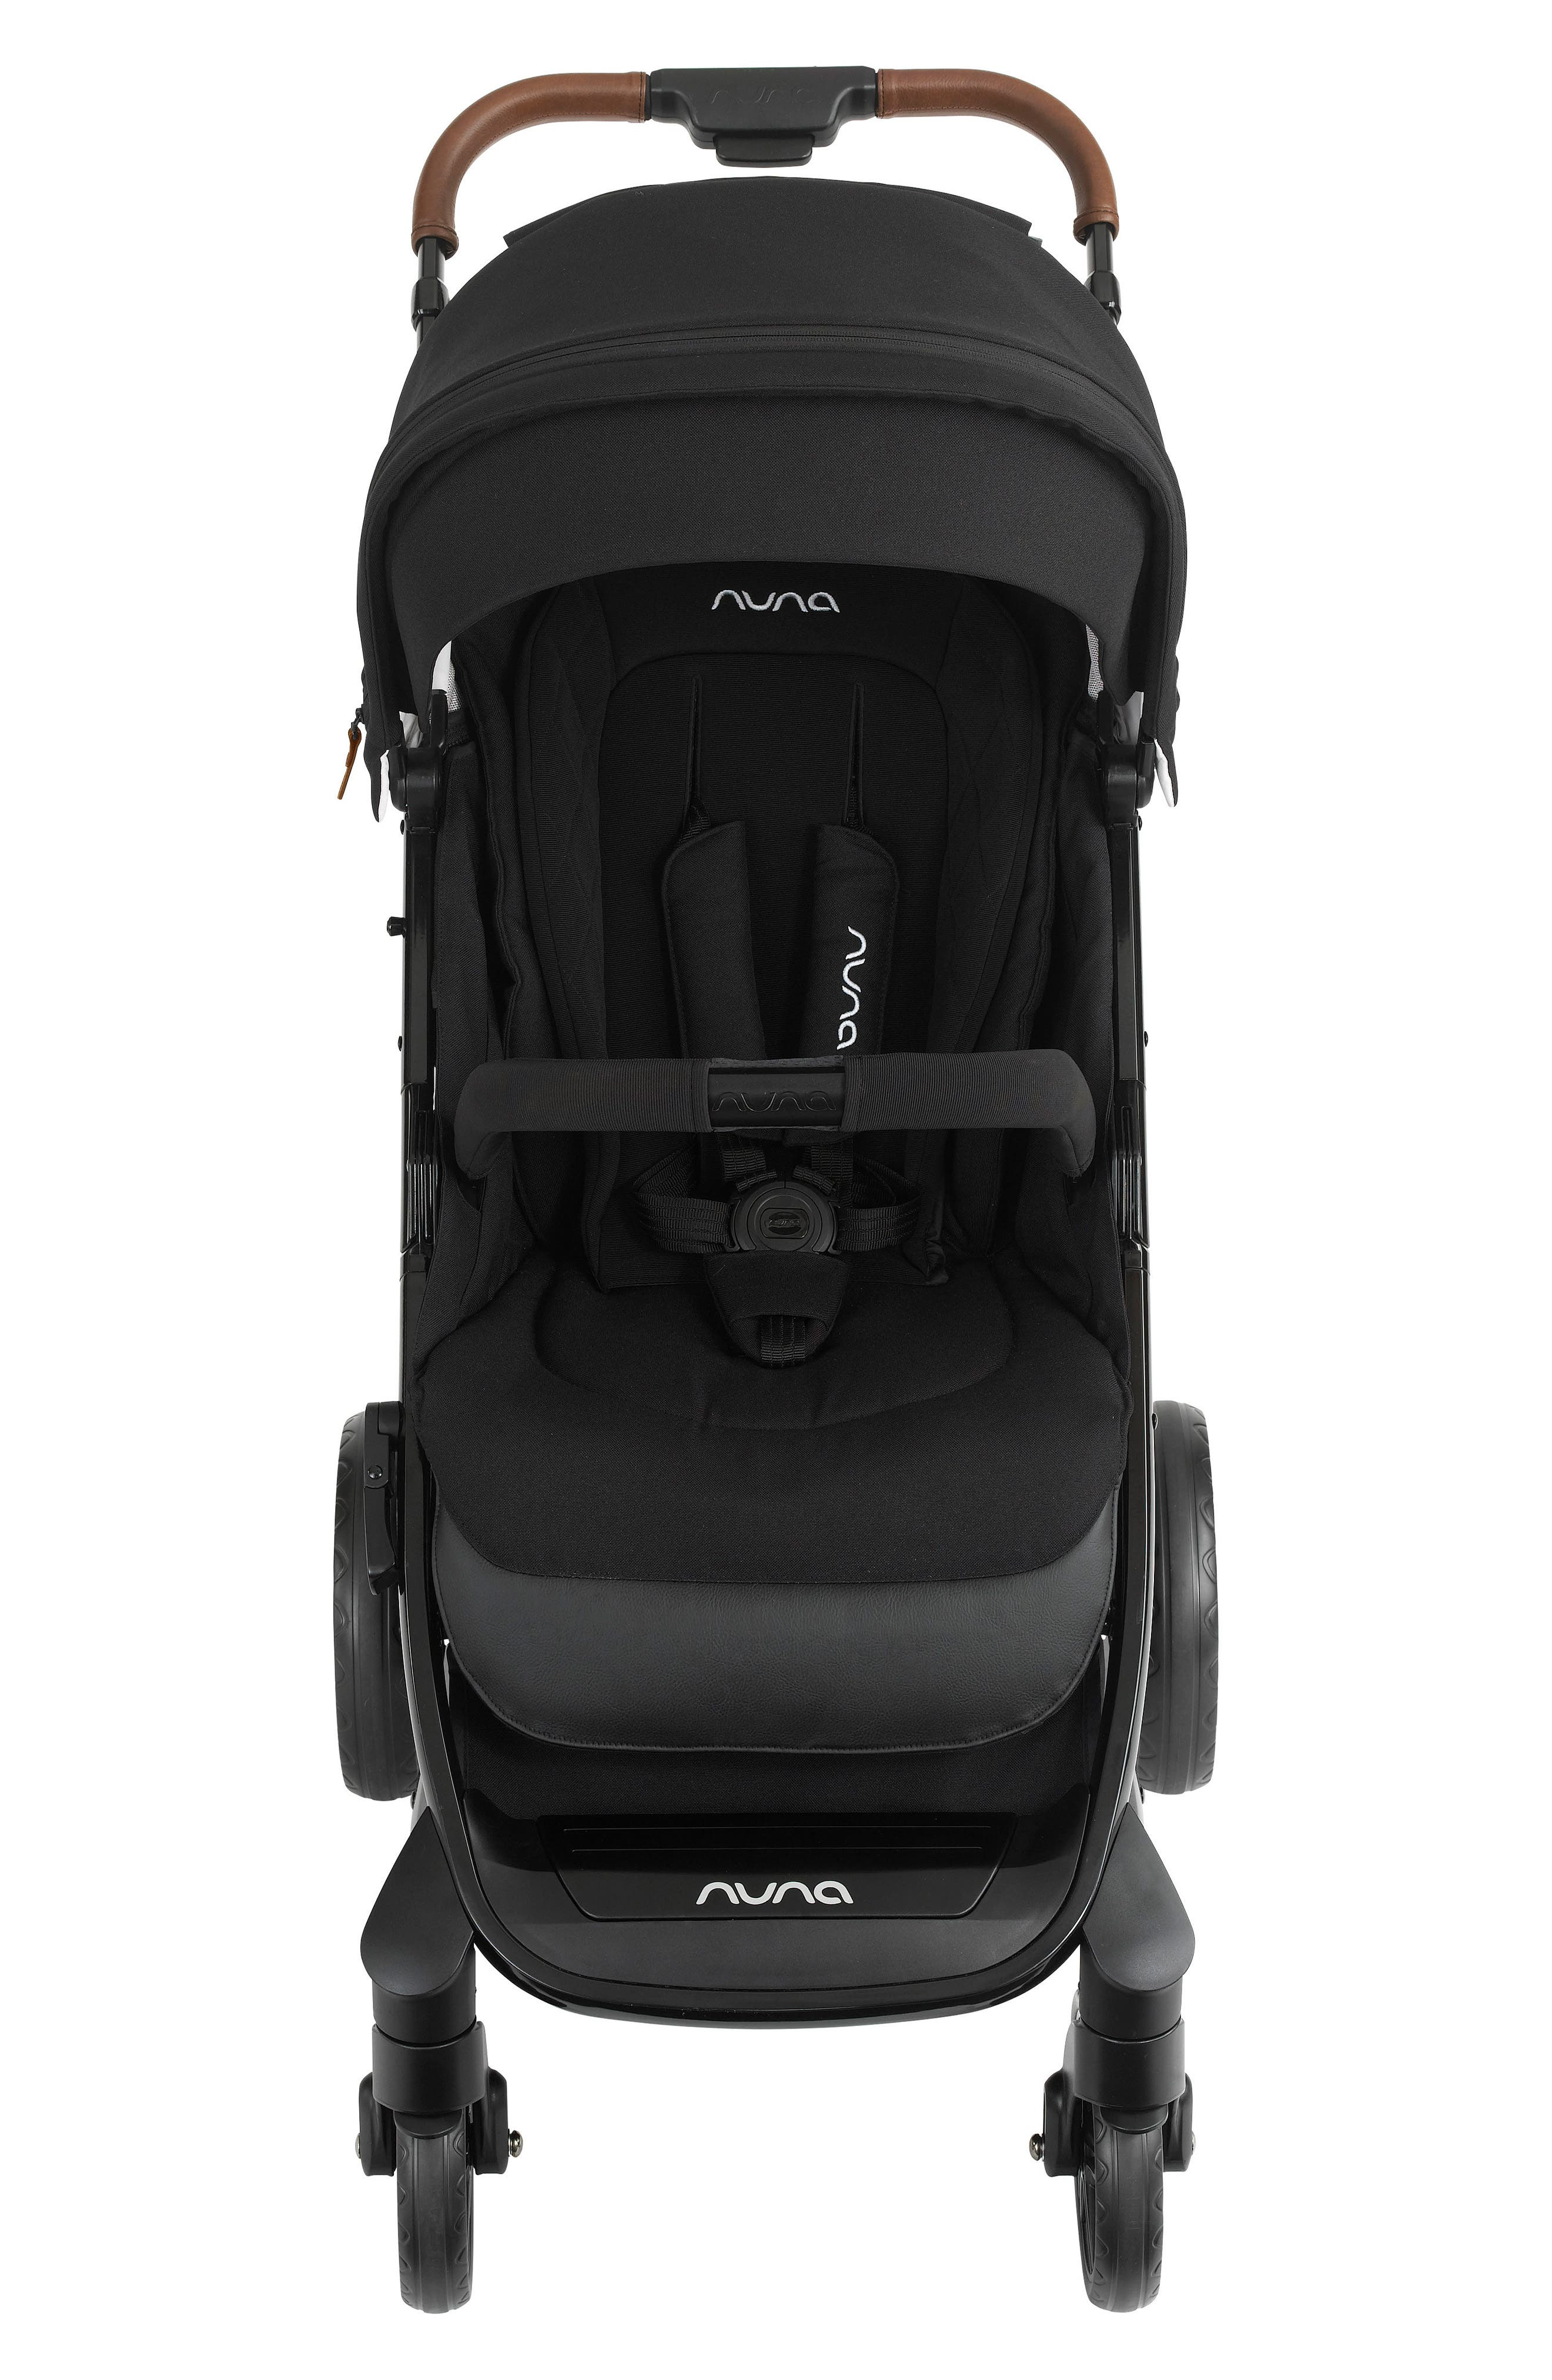 2019 TAVO<sup>™</sup> Stroller,                             Alternate thumbnail 4, color,                             CAVIAR